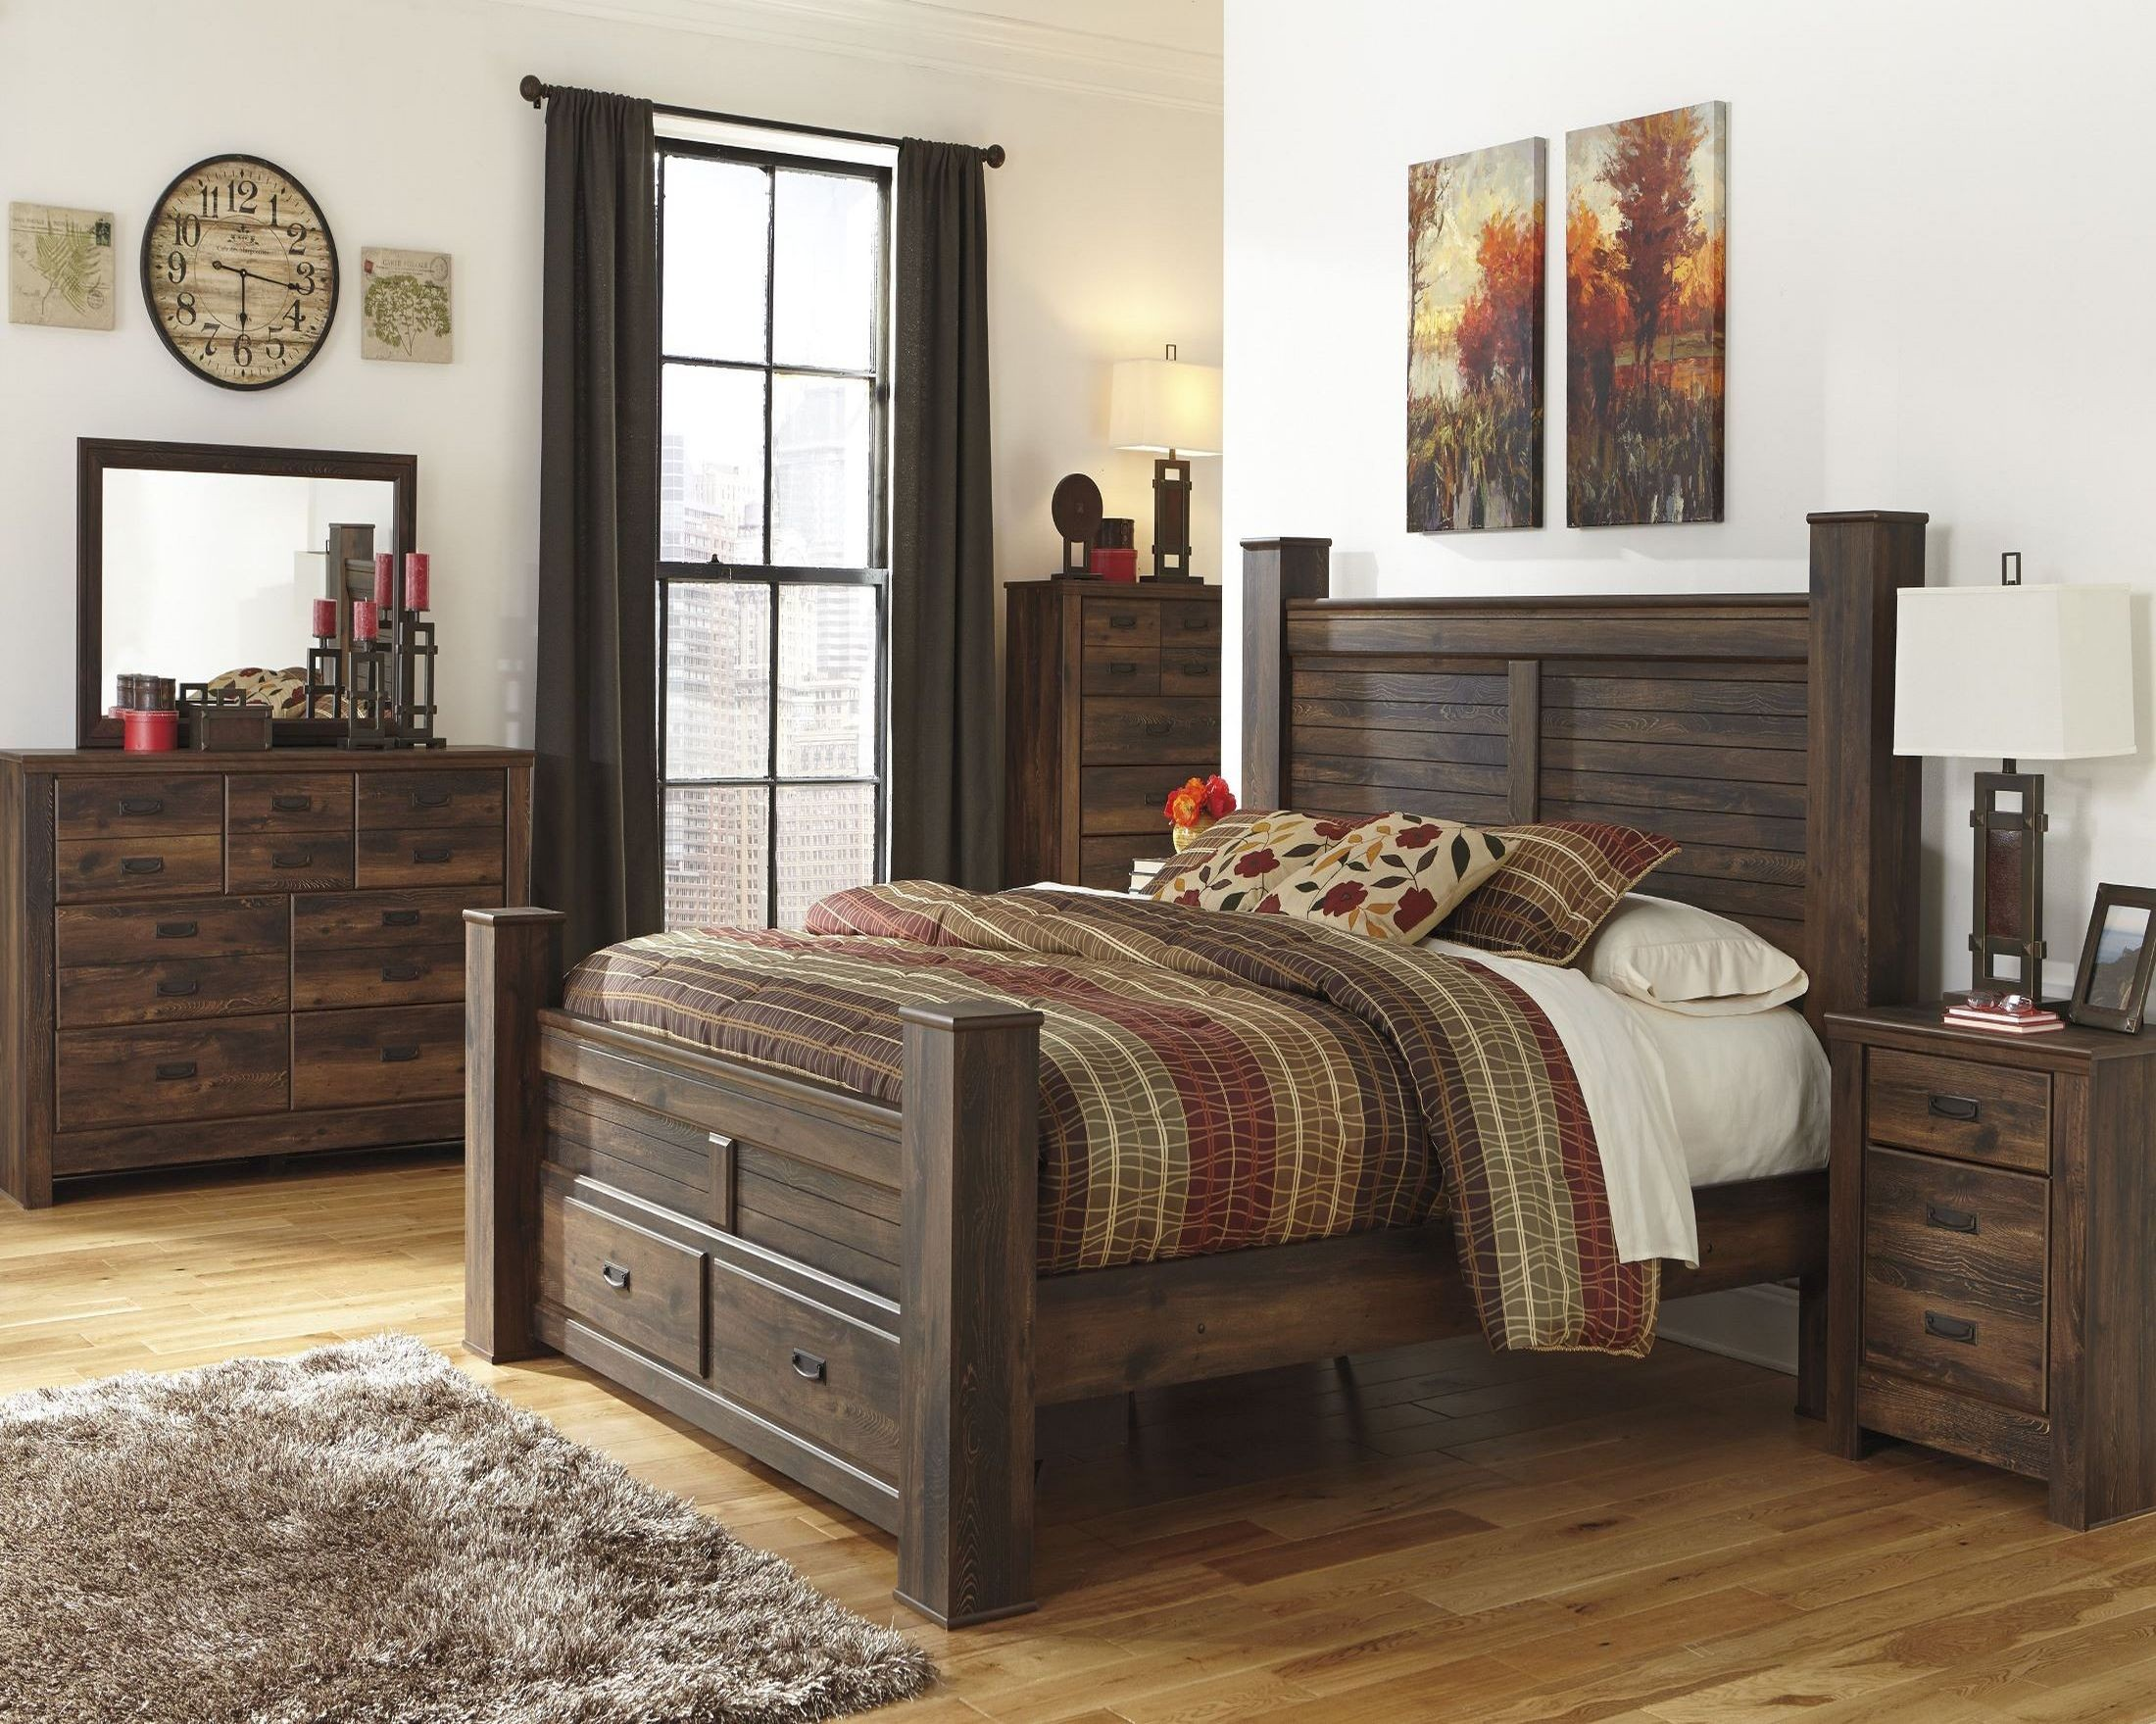 quinden poster storage bedroom set from ashley b246 61 12927 | b246 31 36 46 68 66s 61 70 99 92 converted